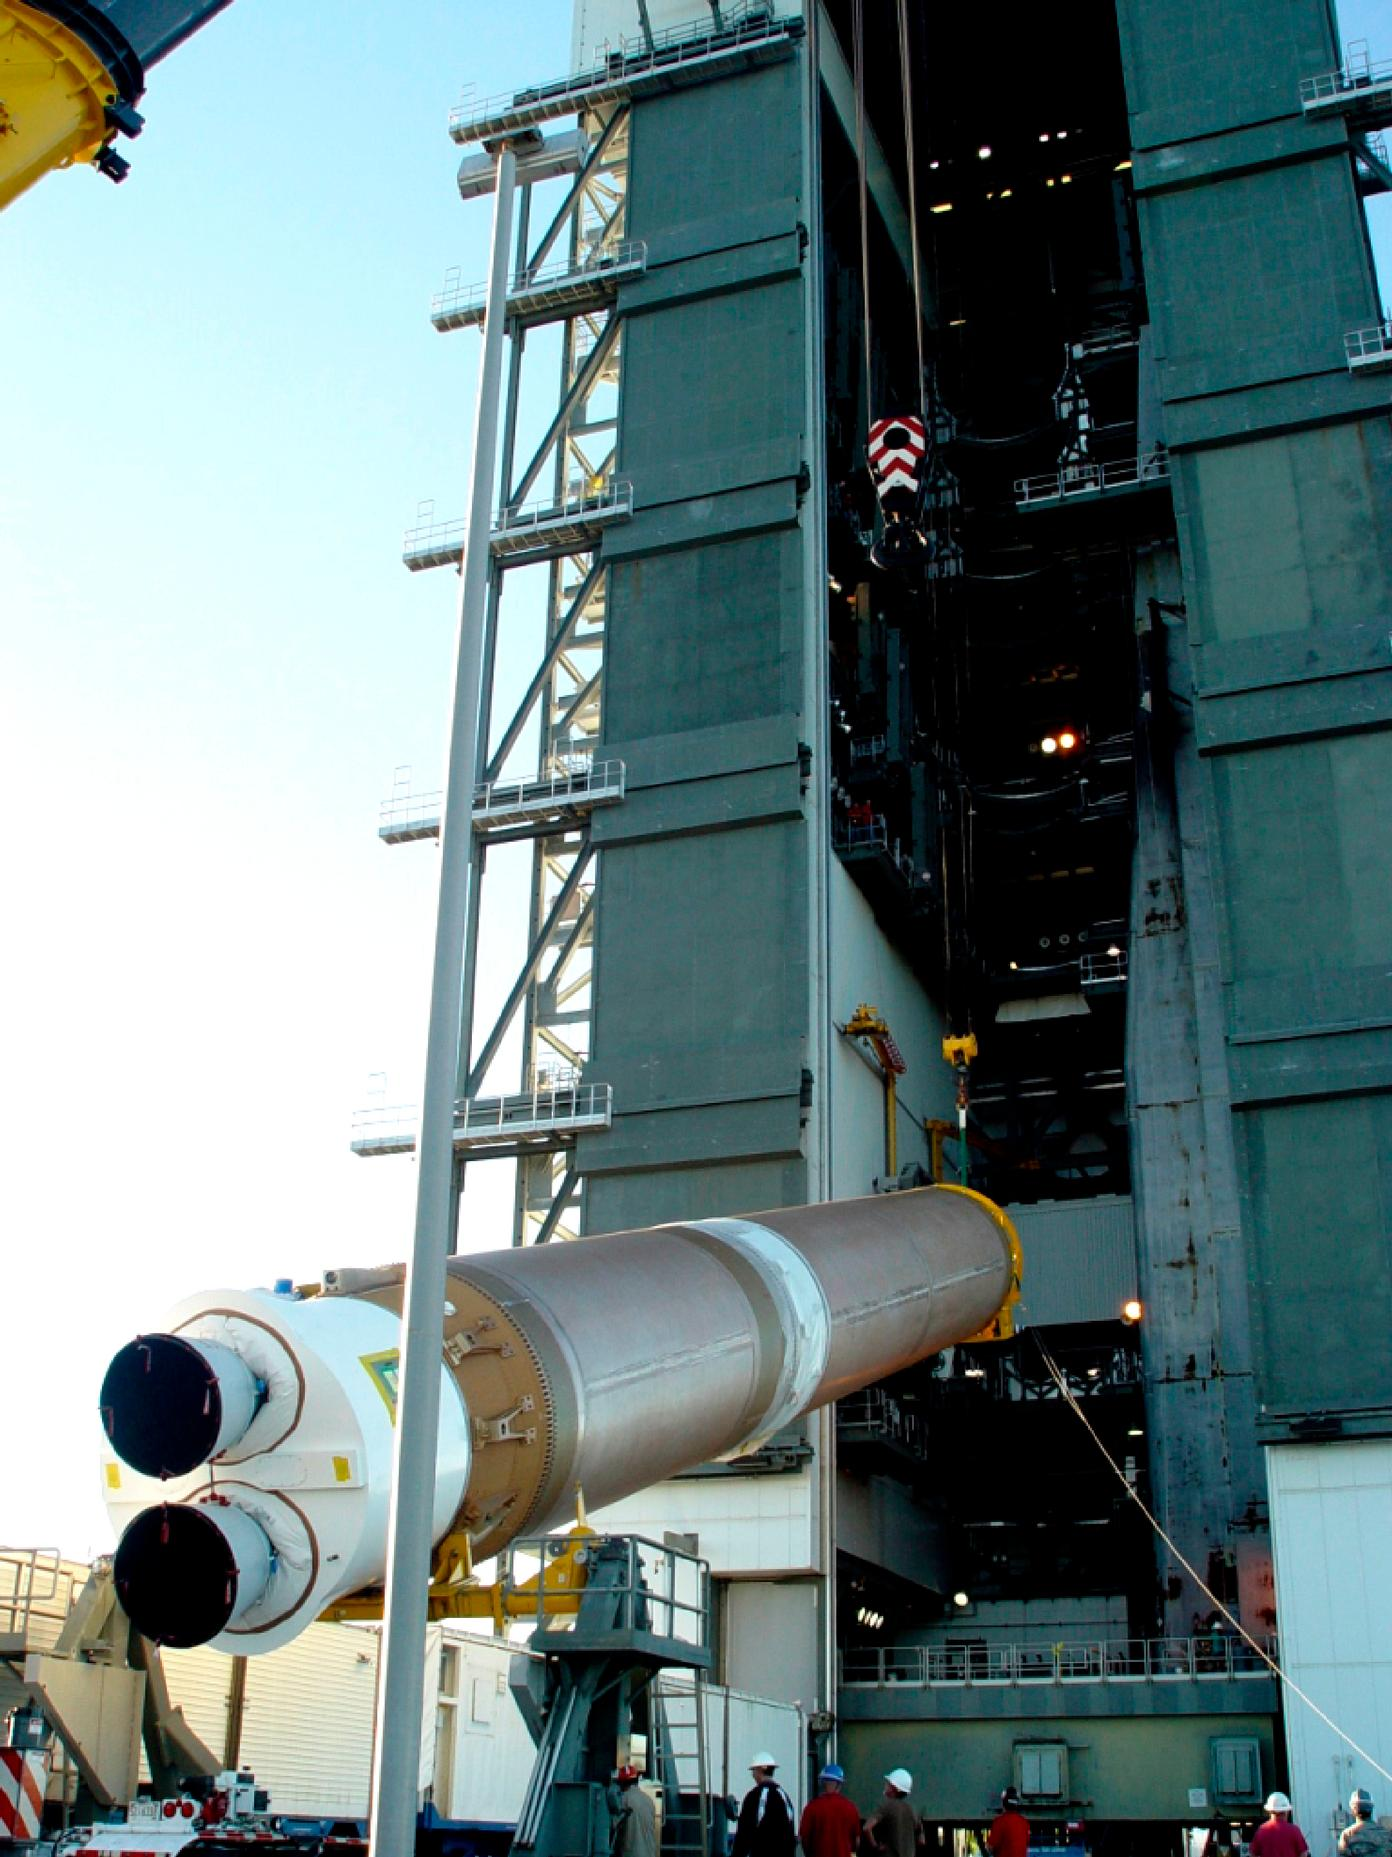 At Cape Canaveral Air Force Station in Florida, the United Launch Alliance Atlas V first stage is lifted for stacking at Launch Pad 41 in preparation for the Mars Atmosphere and Volatile Evolution, or MAVEN, mission.